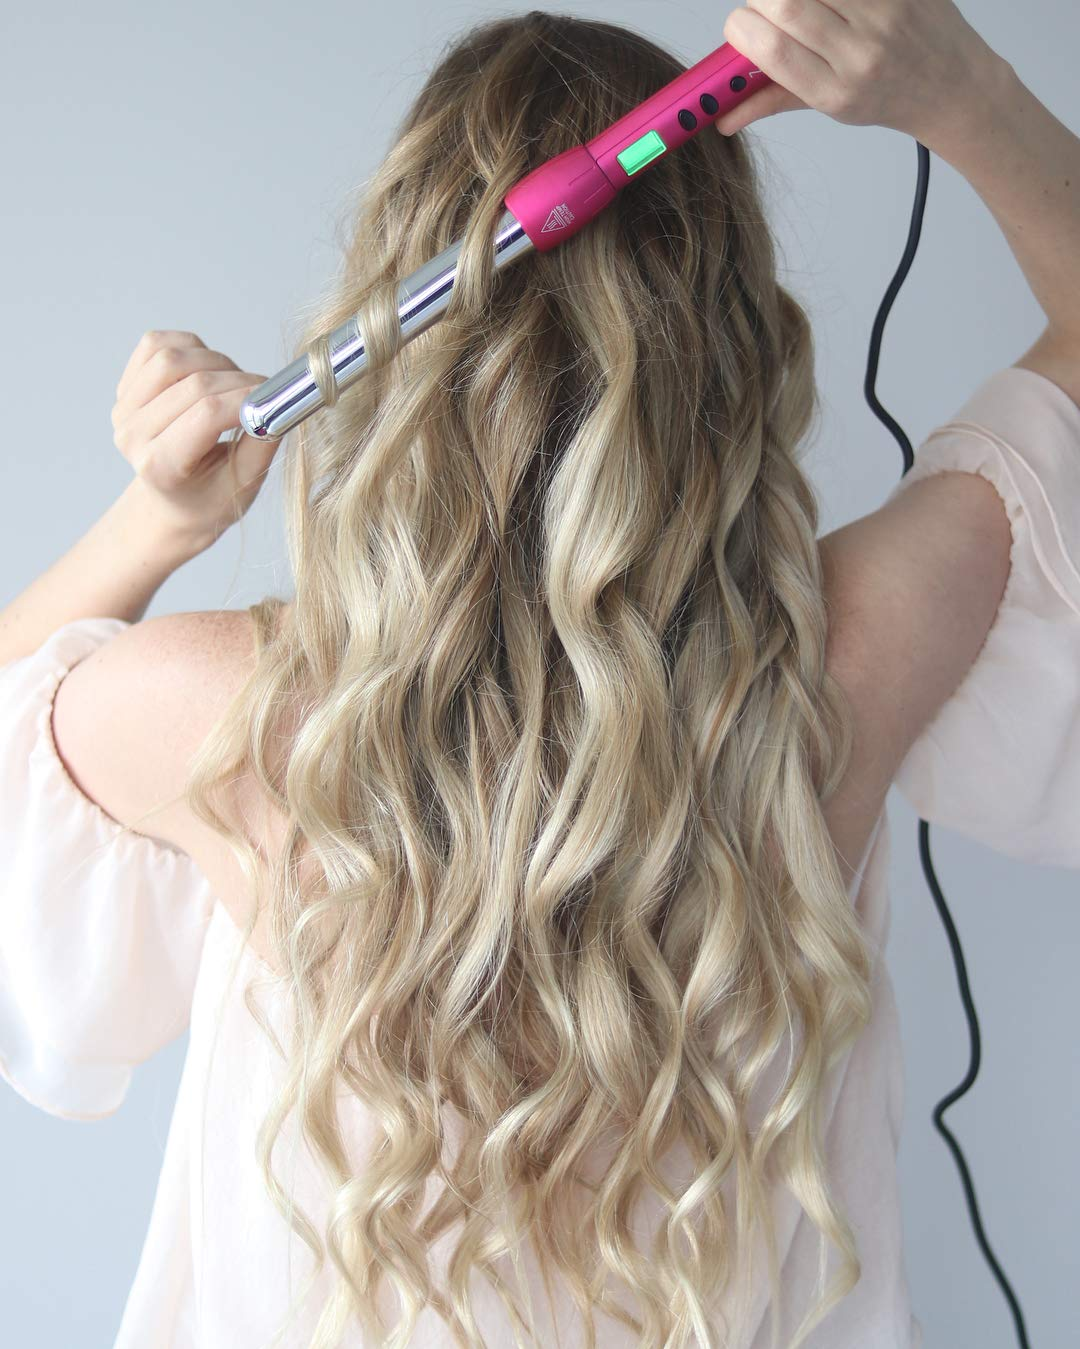 NuMe Magic Curling Wand, 25 mm, pink by NuMe